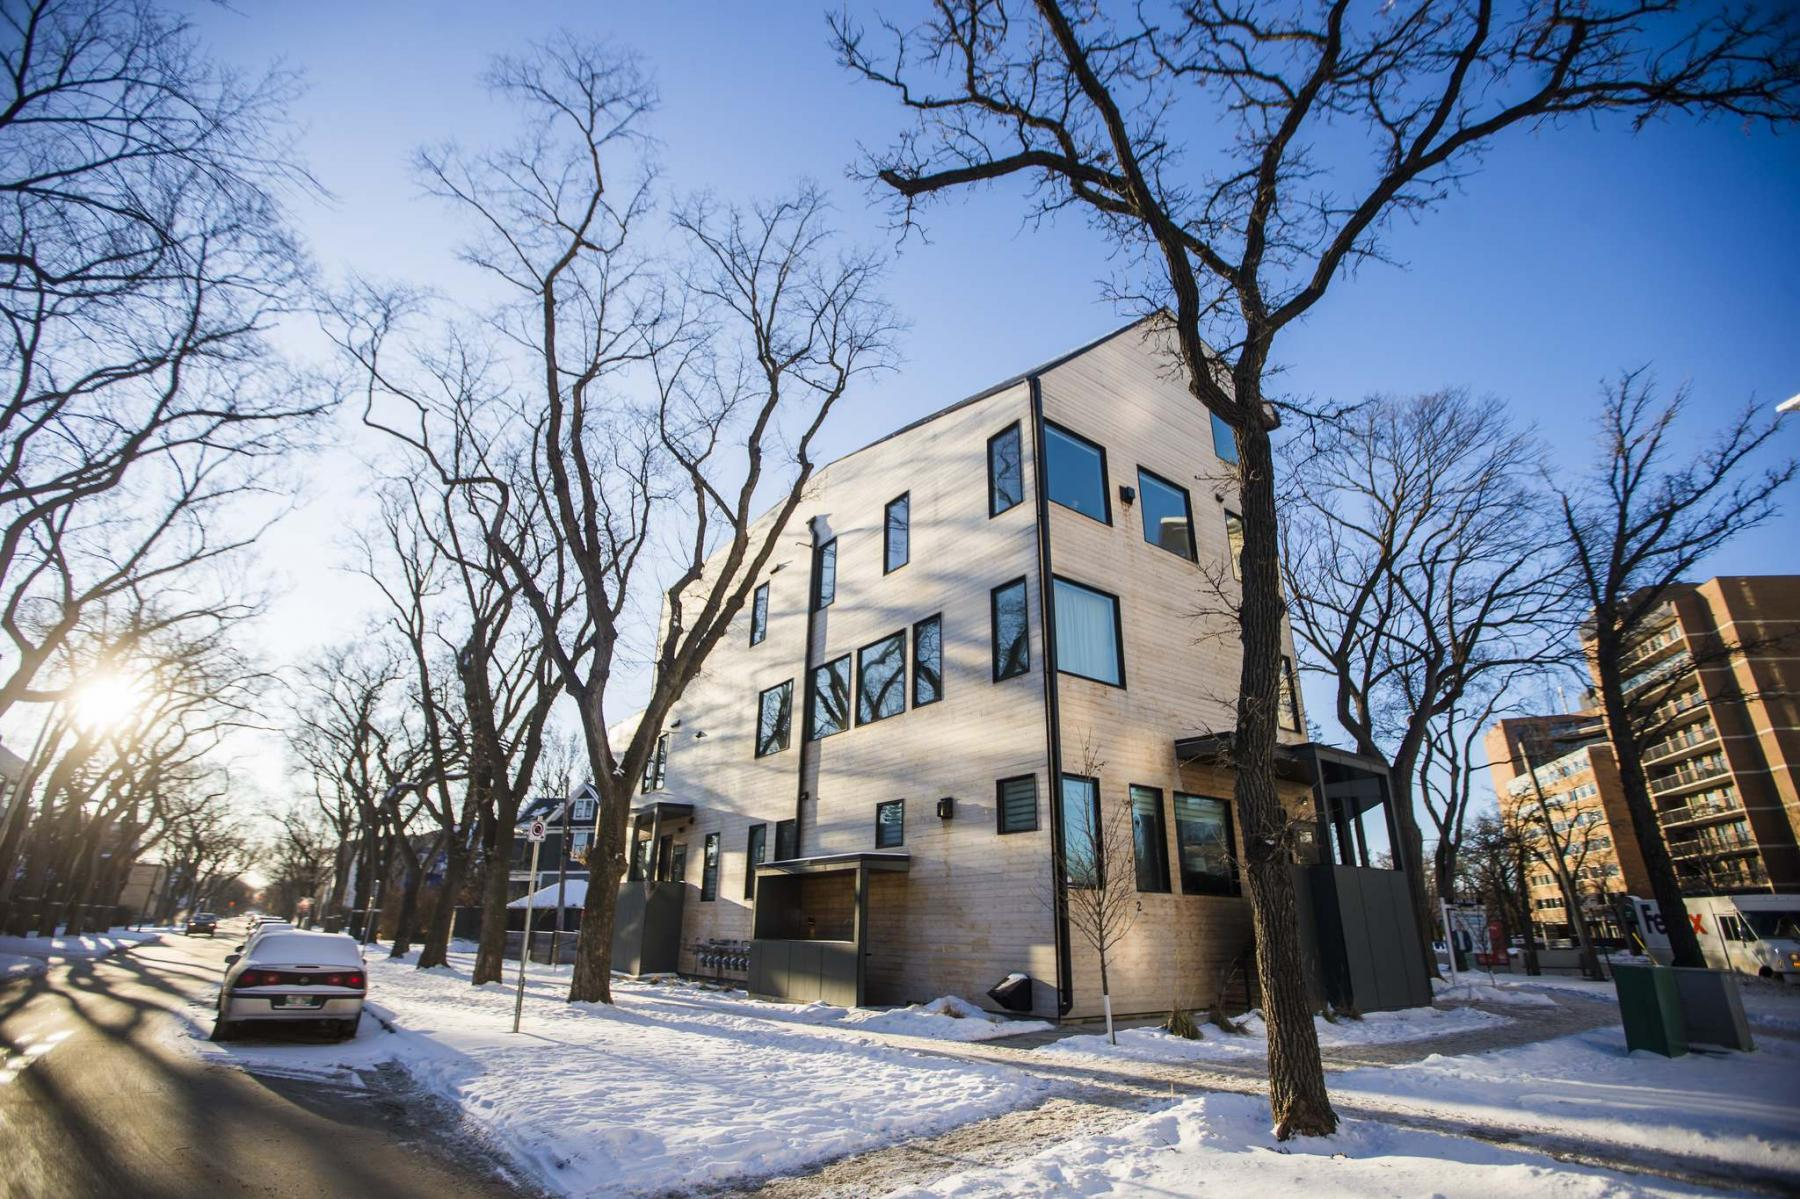 <p>MIKAELA MACKENZIE / WINNIPEG FREE PRESS</p></p><p>The exterior of 234 Wellington Crescent is a modern design with rustic charm. </p>